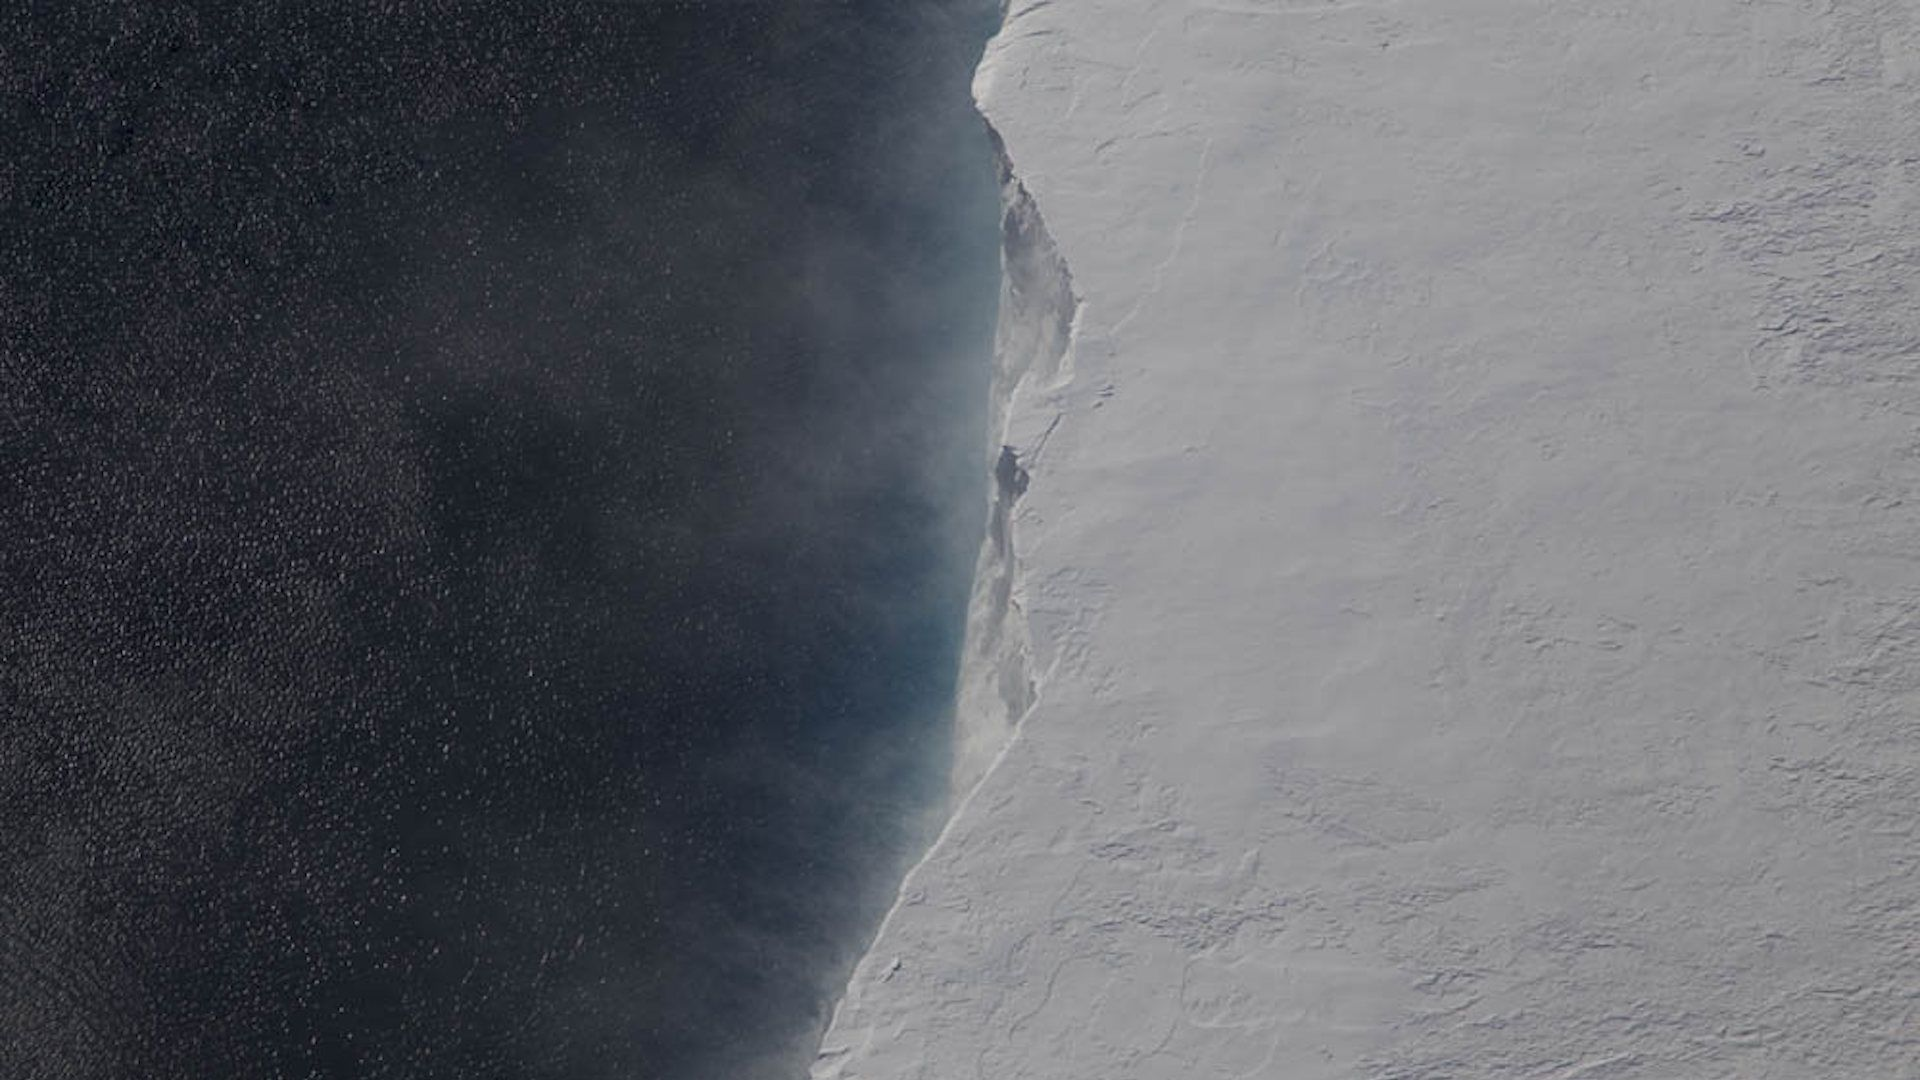 From Antarctica iceberg broke off giant size